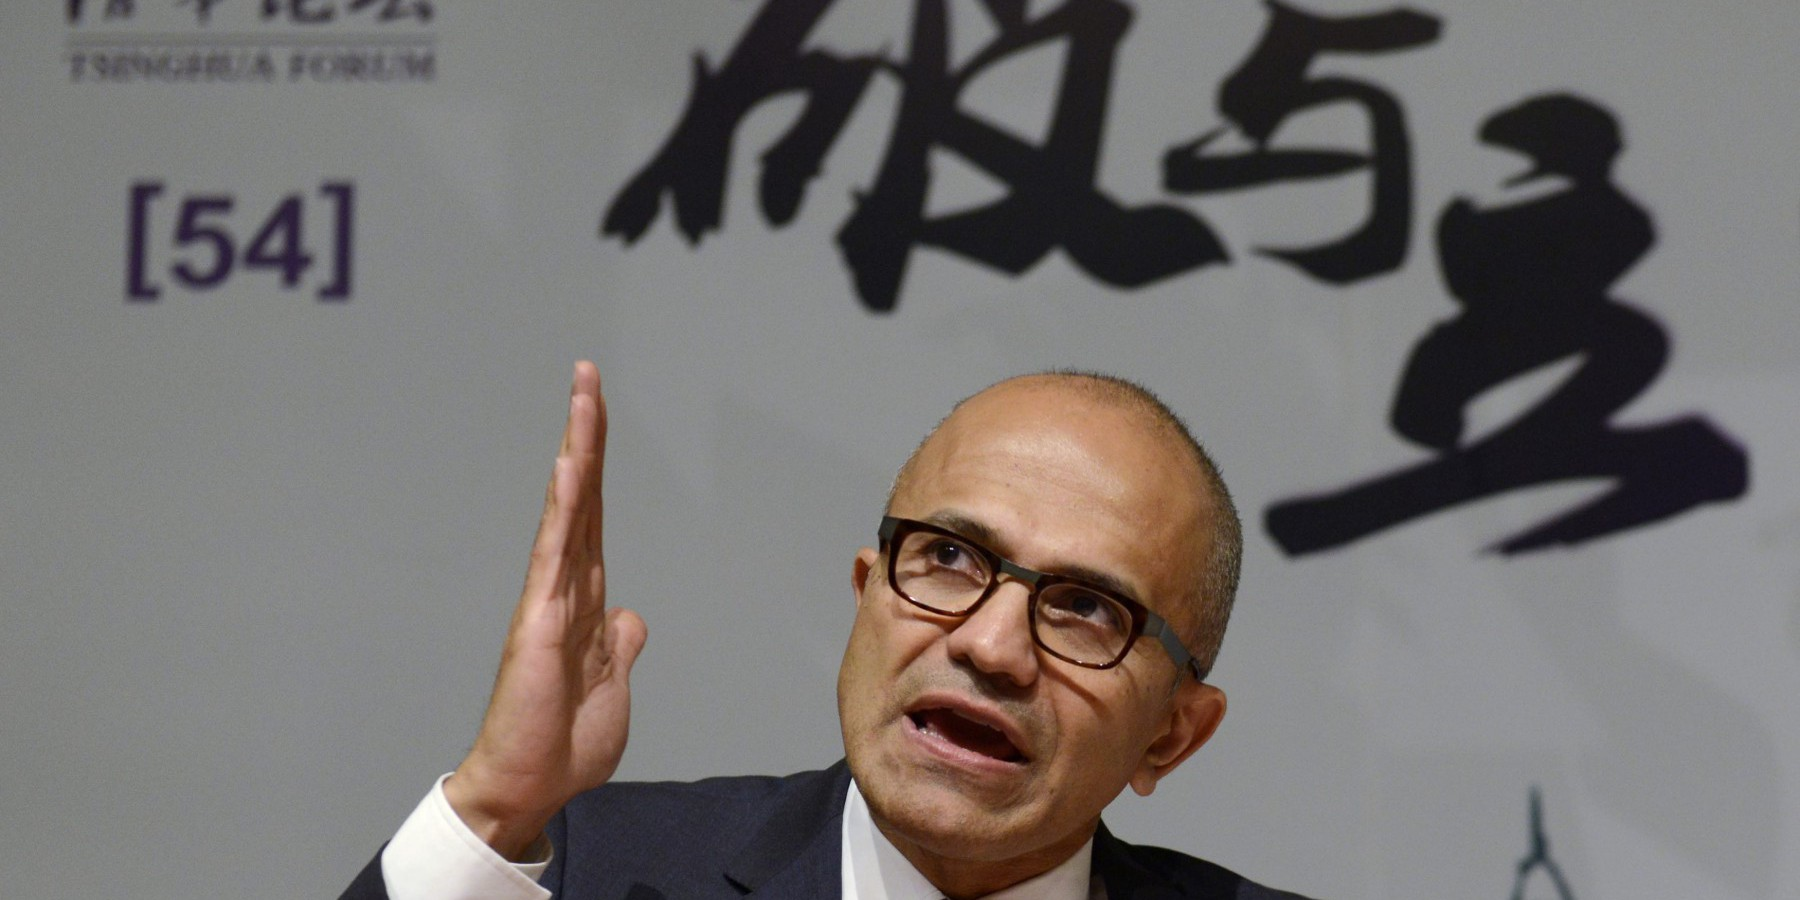 Satya Nadella speaks at Tsinghua University in Beijing